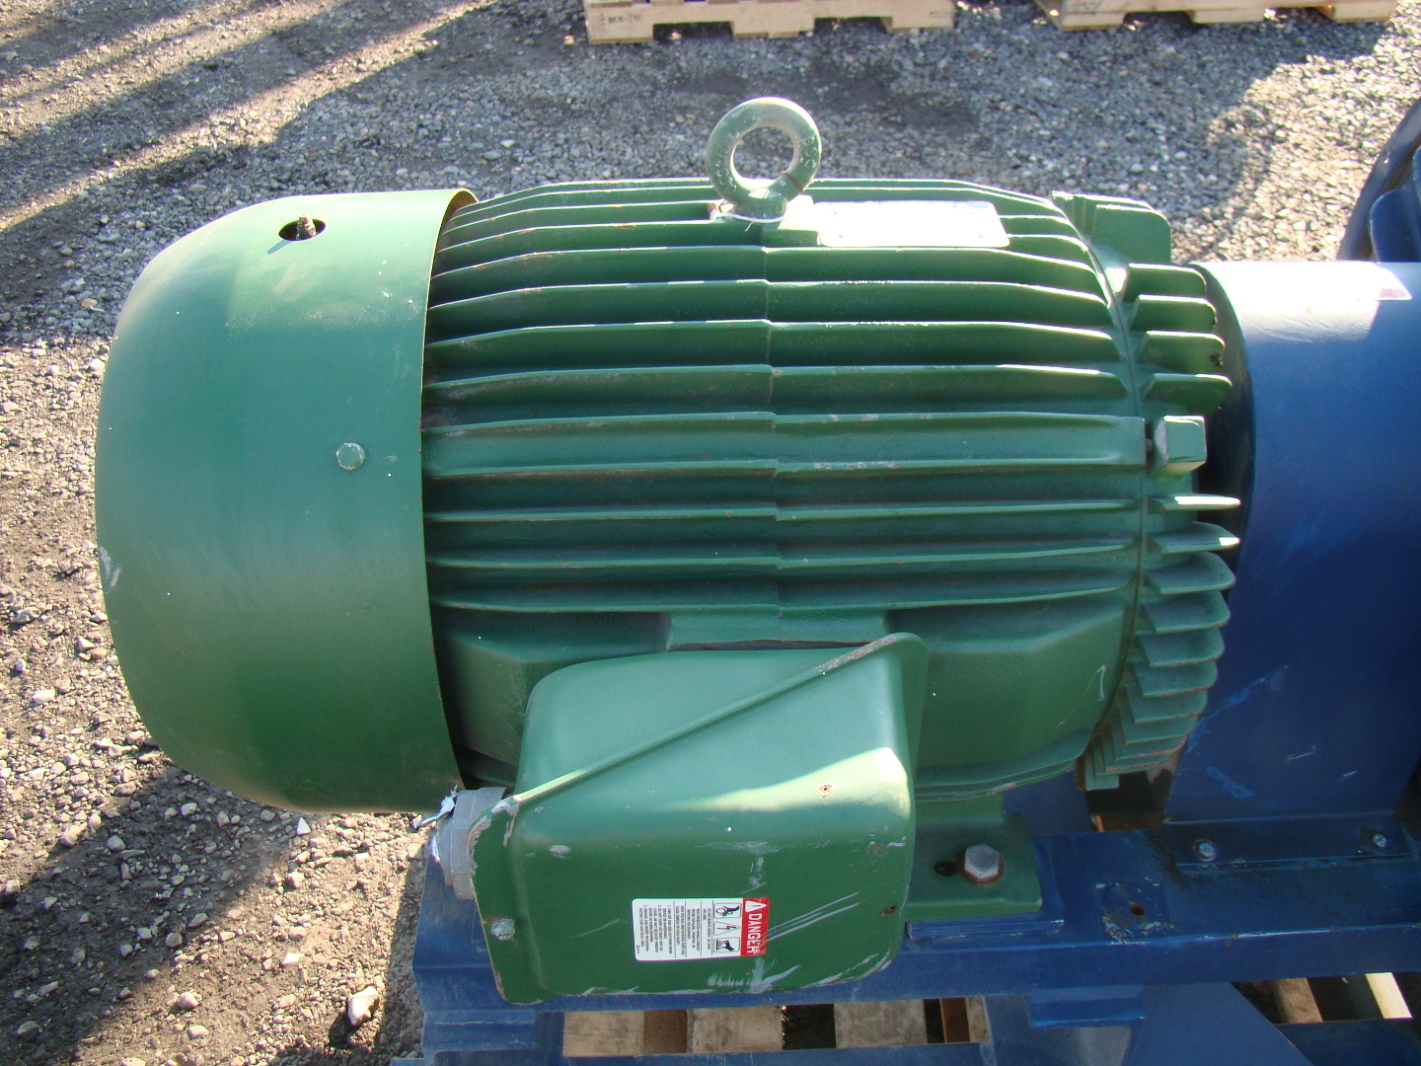 Details about Spencer Turbine 75HP Centrifugal Blower S24310D #284367